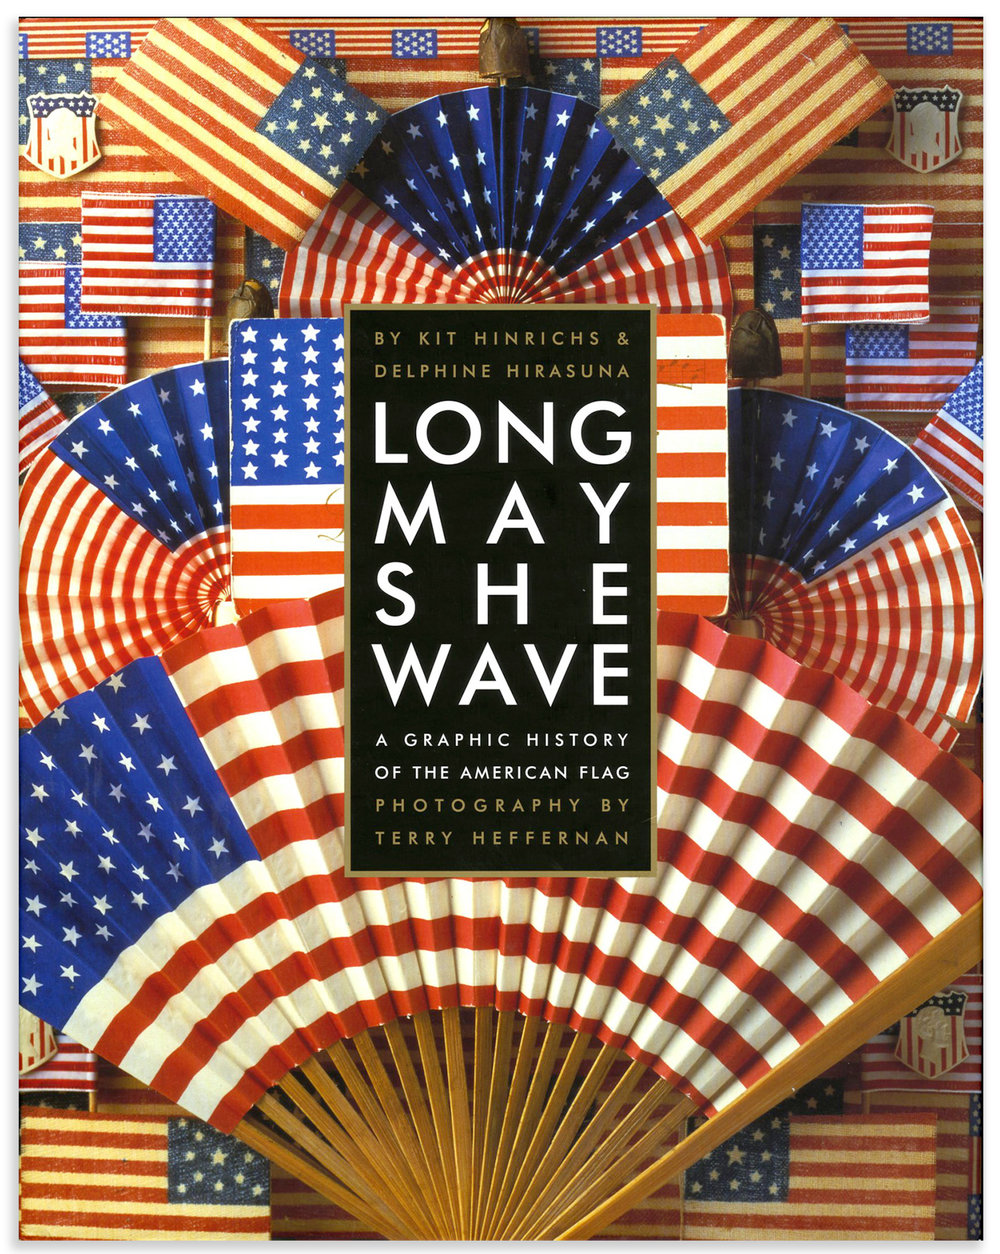 Long May She Wave: A Graphic History of the American Flag